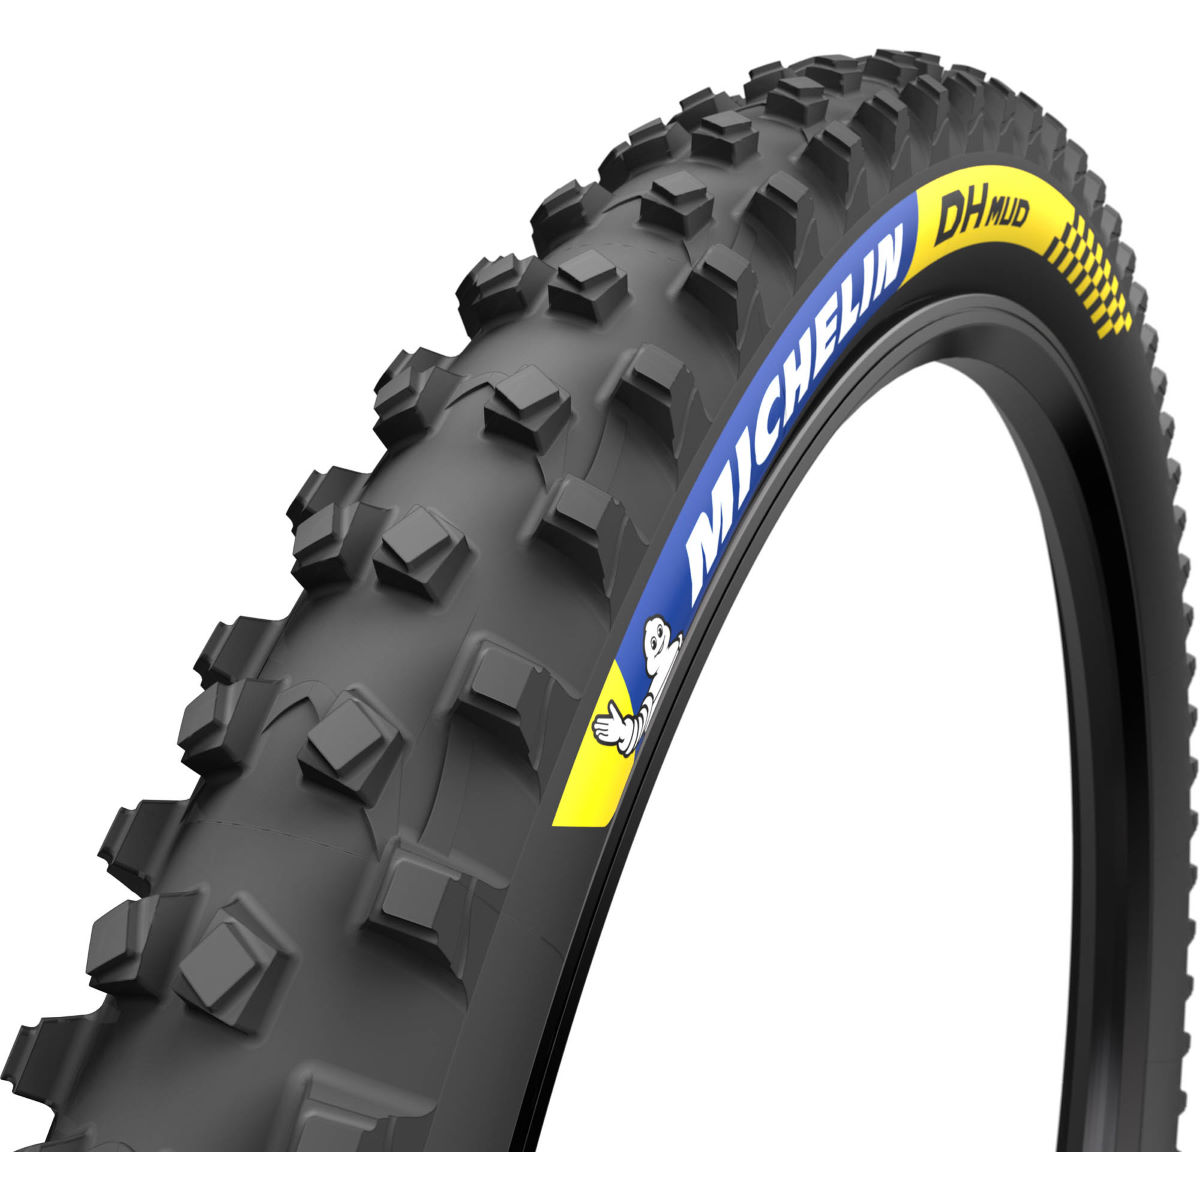 MICHELIN Michelin DH Mud TLR Tyre   Tyres